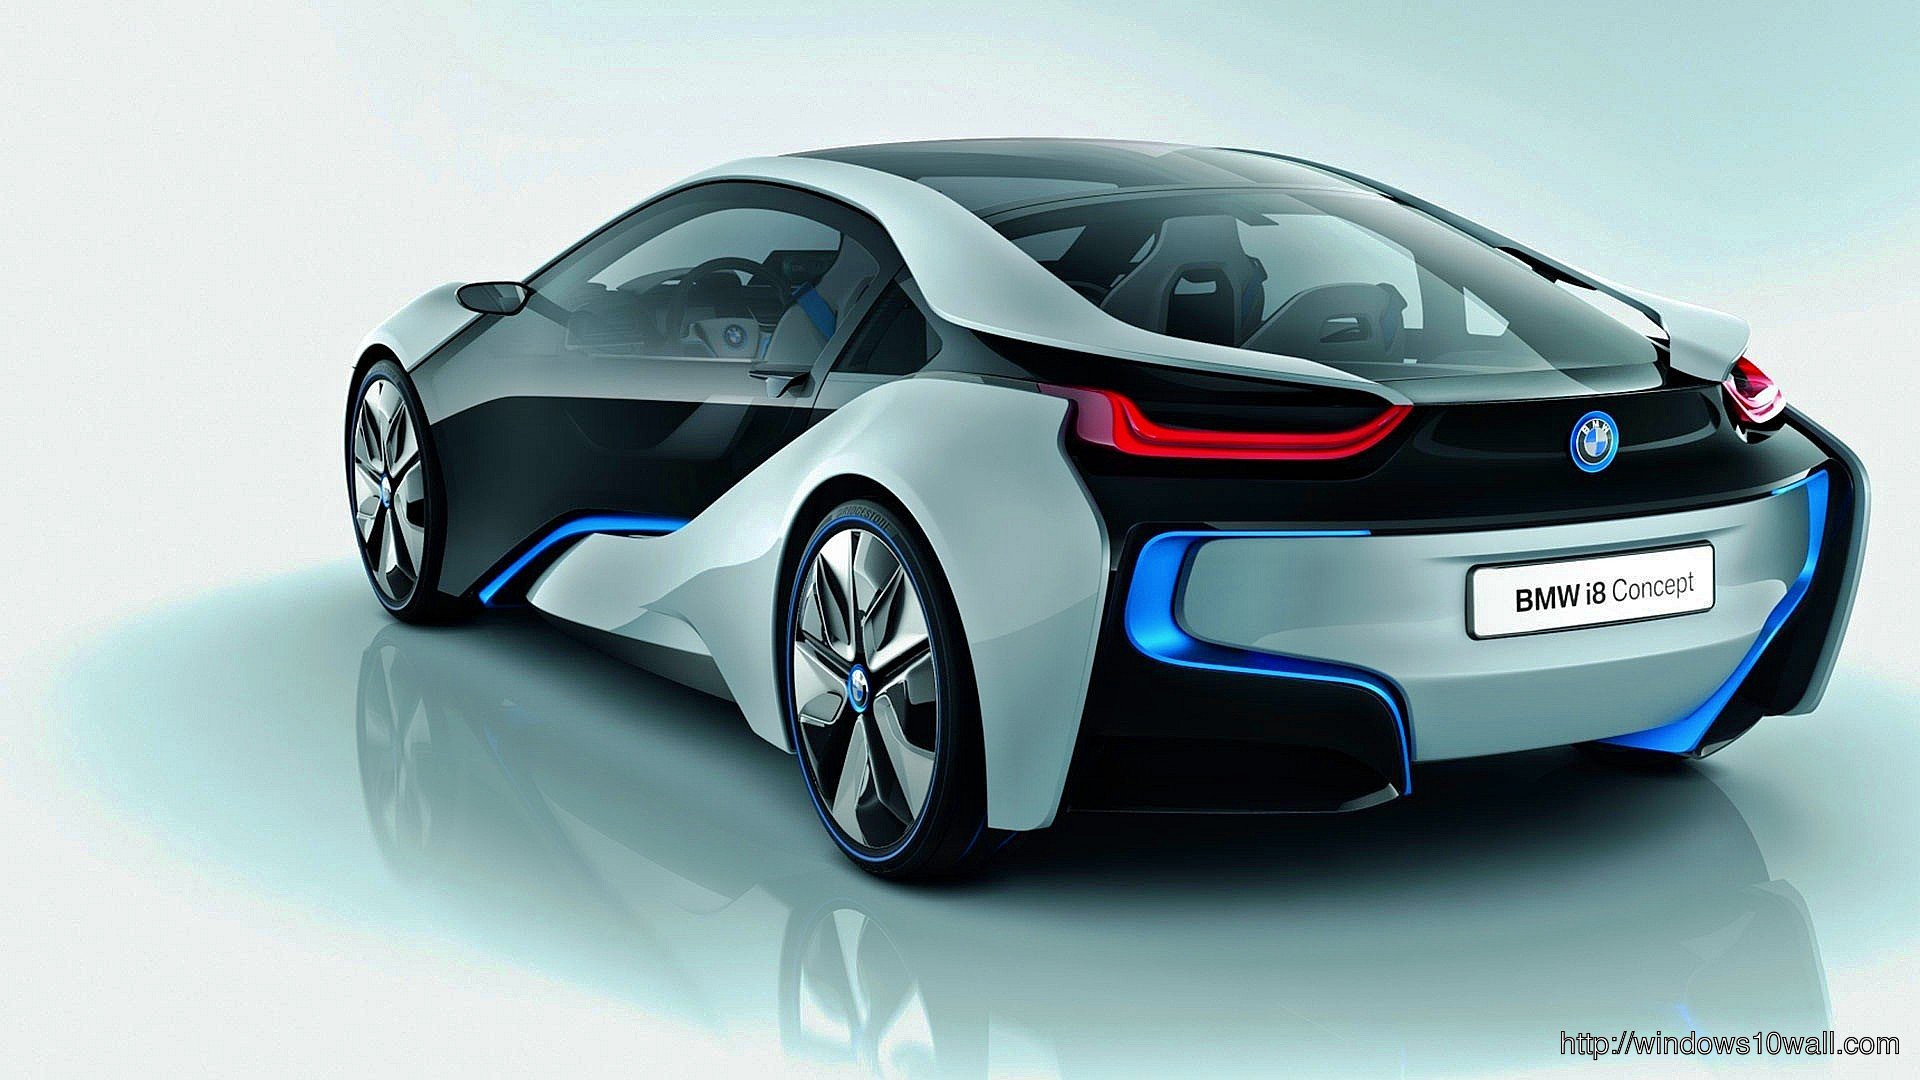 conew bmw i8 concept car hd wallpaper windows 10 wallpapers. Black Bedroom Furniture Sets. Home Design Ideas